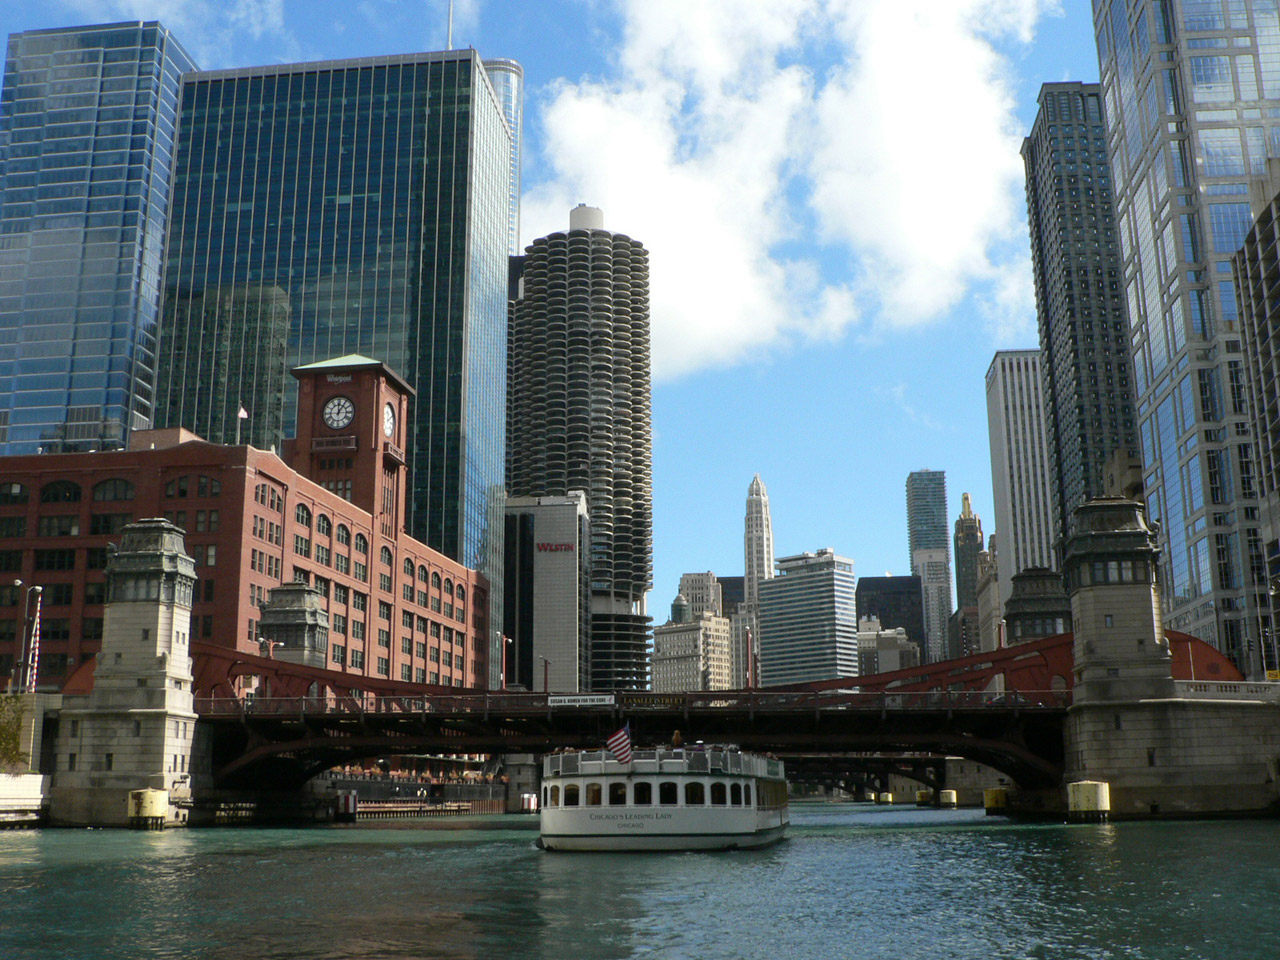 /wp-content/uploads/2016/09/chicago_river_architecture_boat_tour_09_30_2012_for_architectural_tour_chicago_boat_1031837.jpg